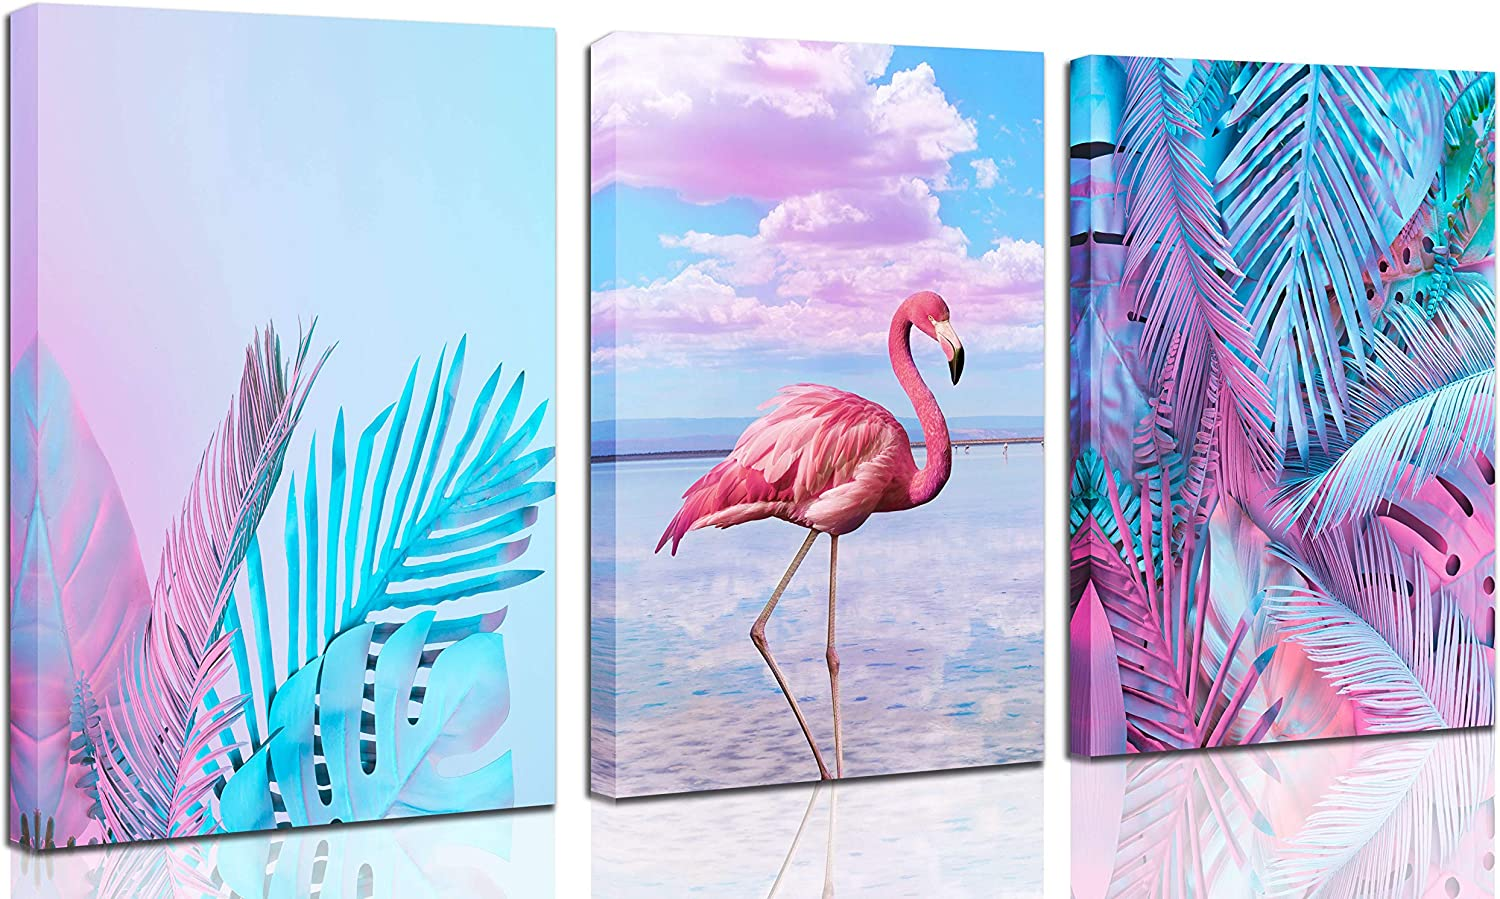 CERLMLAND 3 Panel Pink Flamingo Canvas - Wall Art for Living Room Bedroom, monsstera Shallow Greenleaf Tropical Picture,Modern-Wall-Art - Nature Picture Each 12x16inch